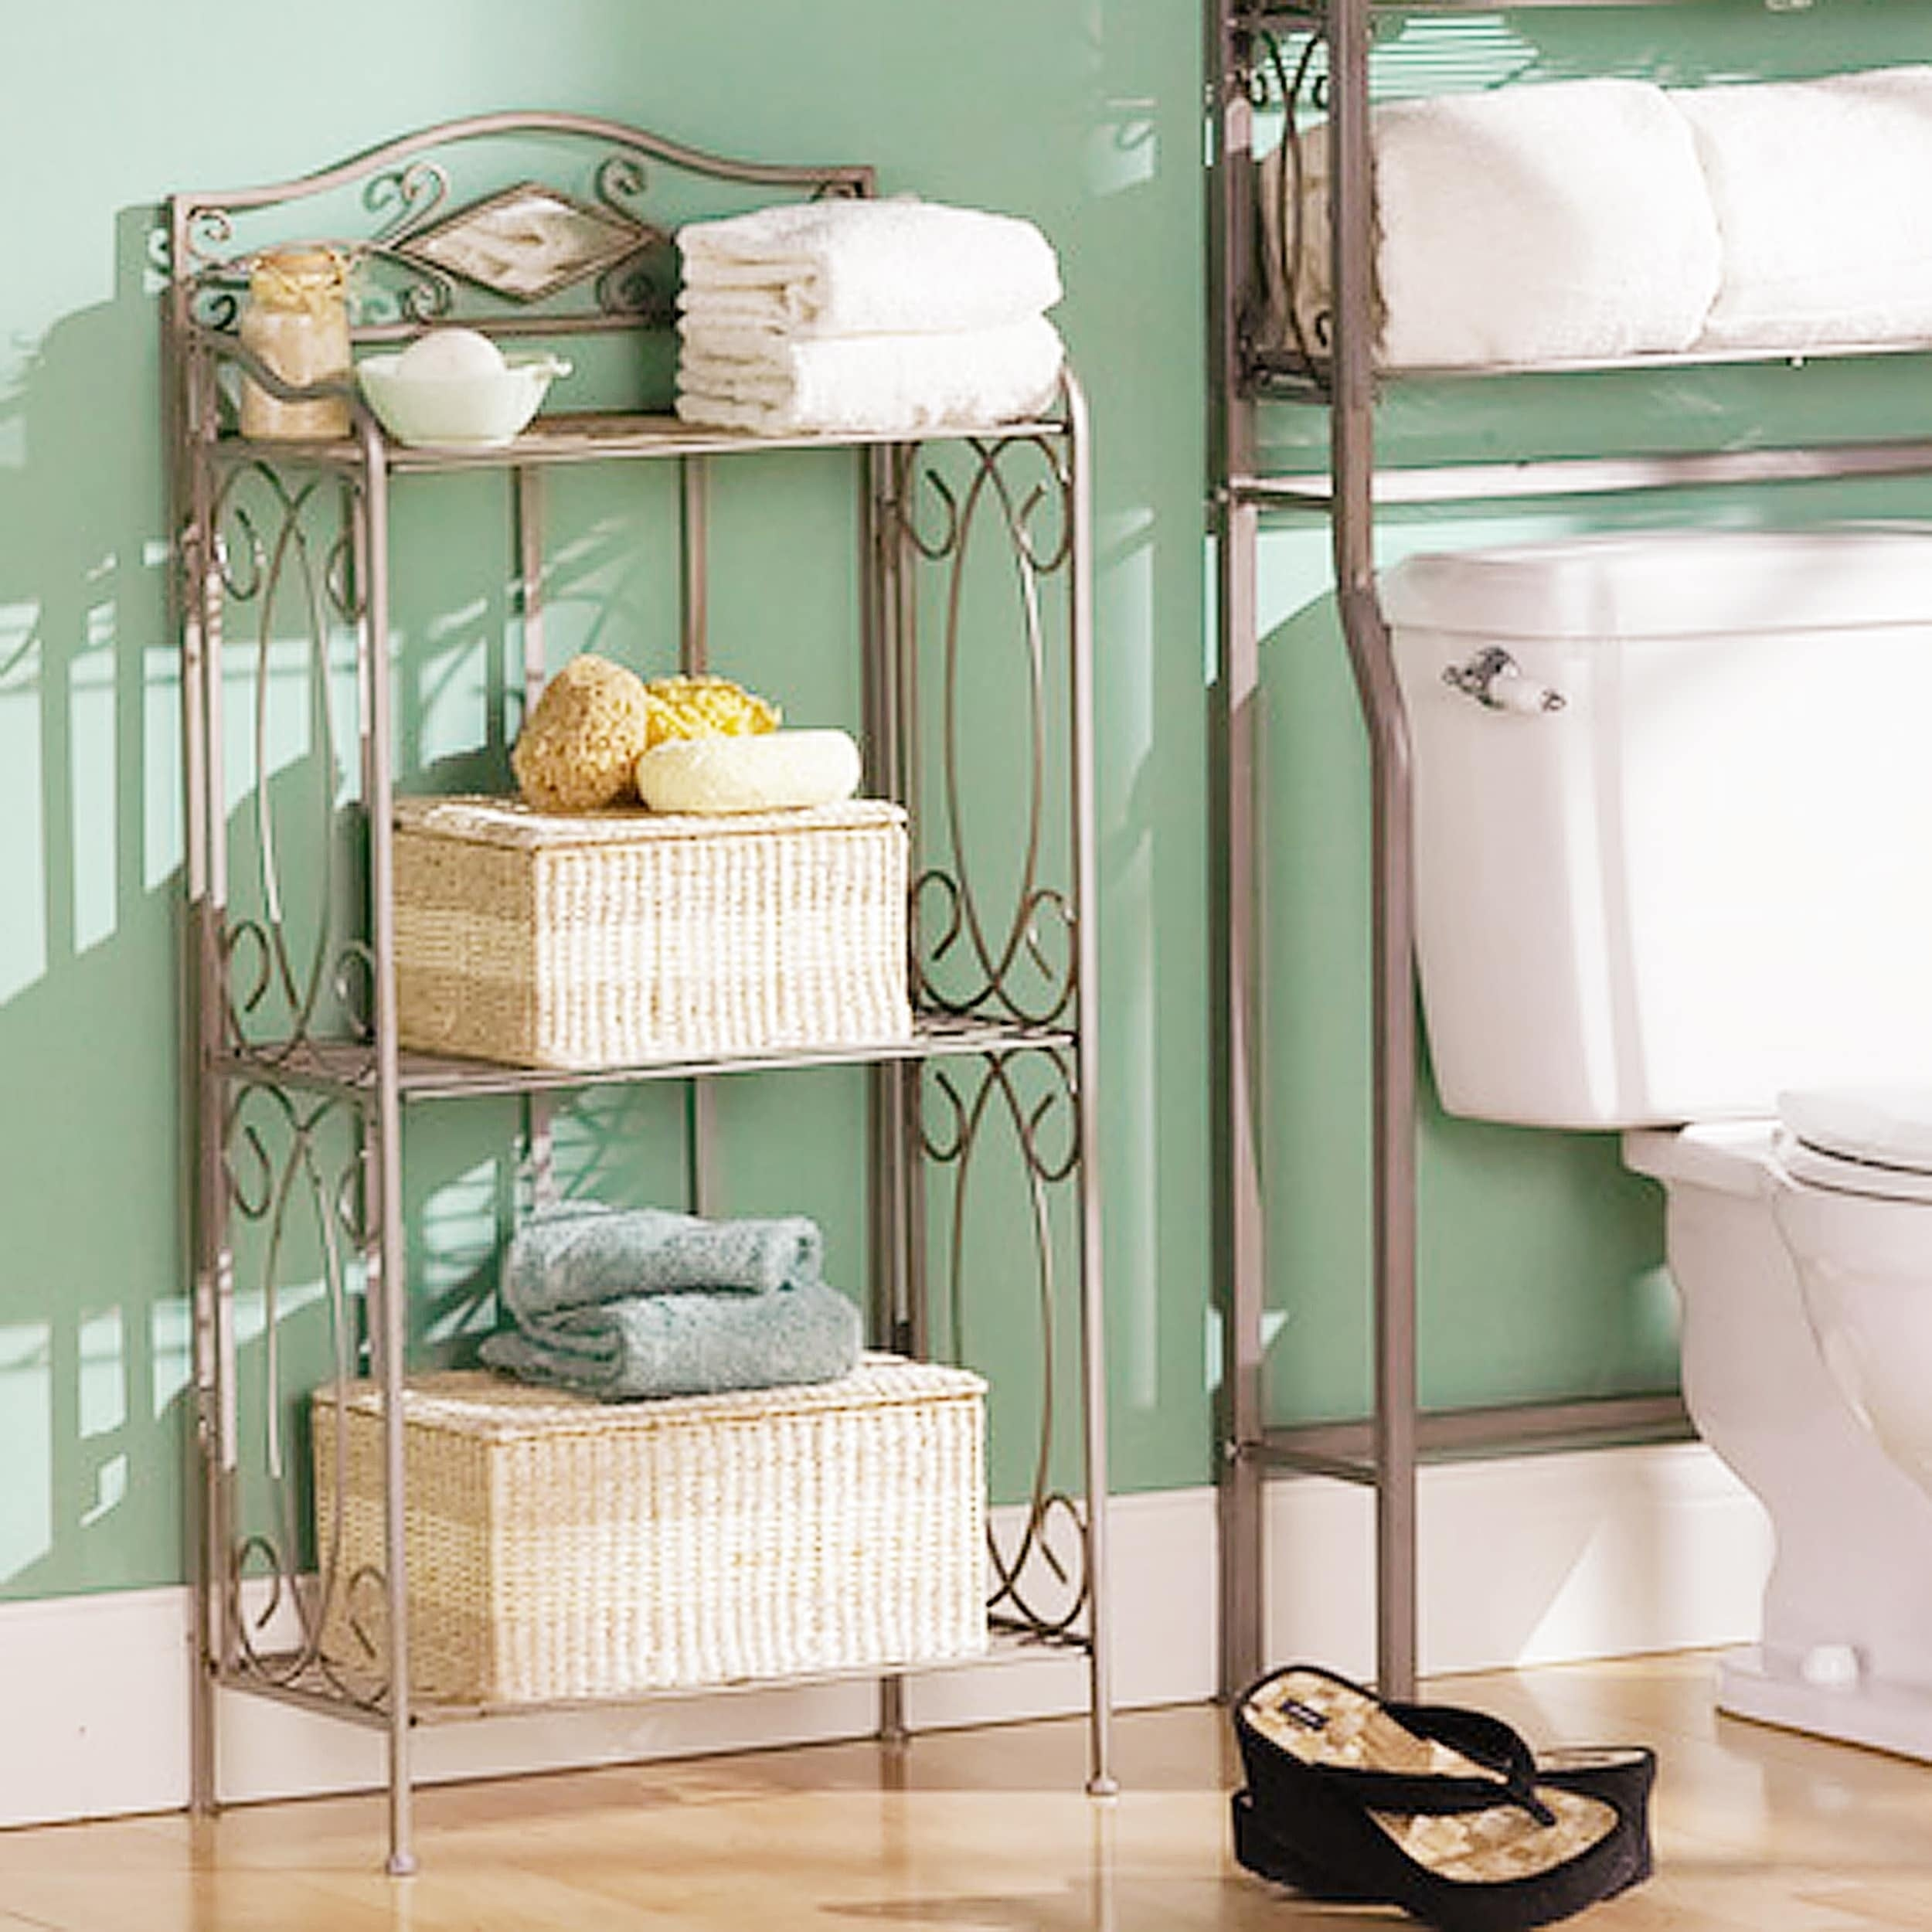 Shop Reflections 3-tier Metal Bathroom Storage Rack - On Sale - Free Shipping Today - Overstock.com - 2105629 & Shop Reflections 3-tier Metal Bathroom Storage Rack - On Sale - Free ...